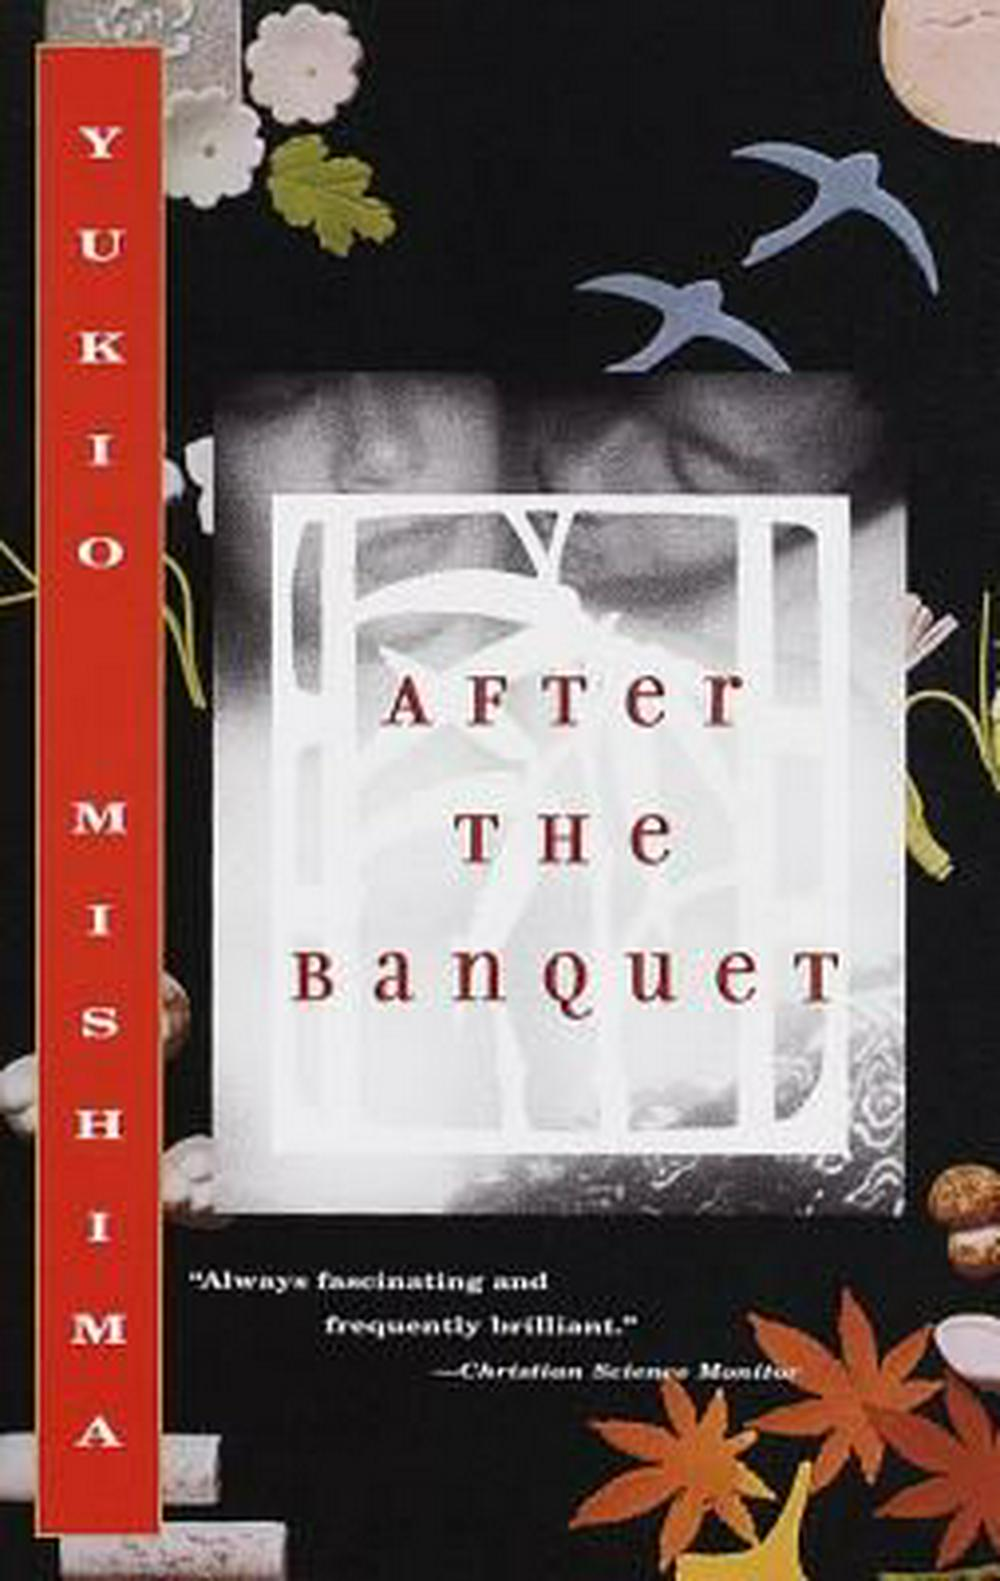 After the Banquet, by Yukio Mishima